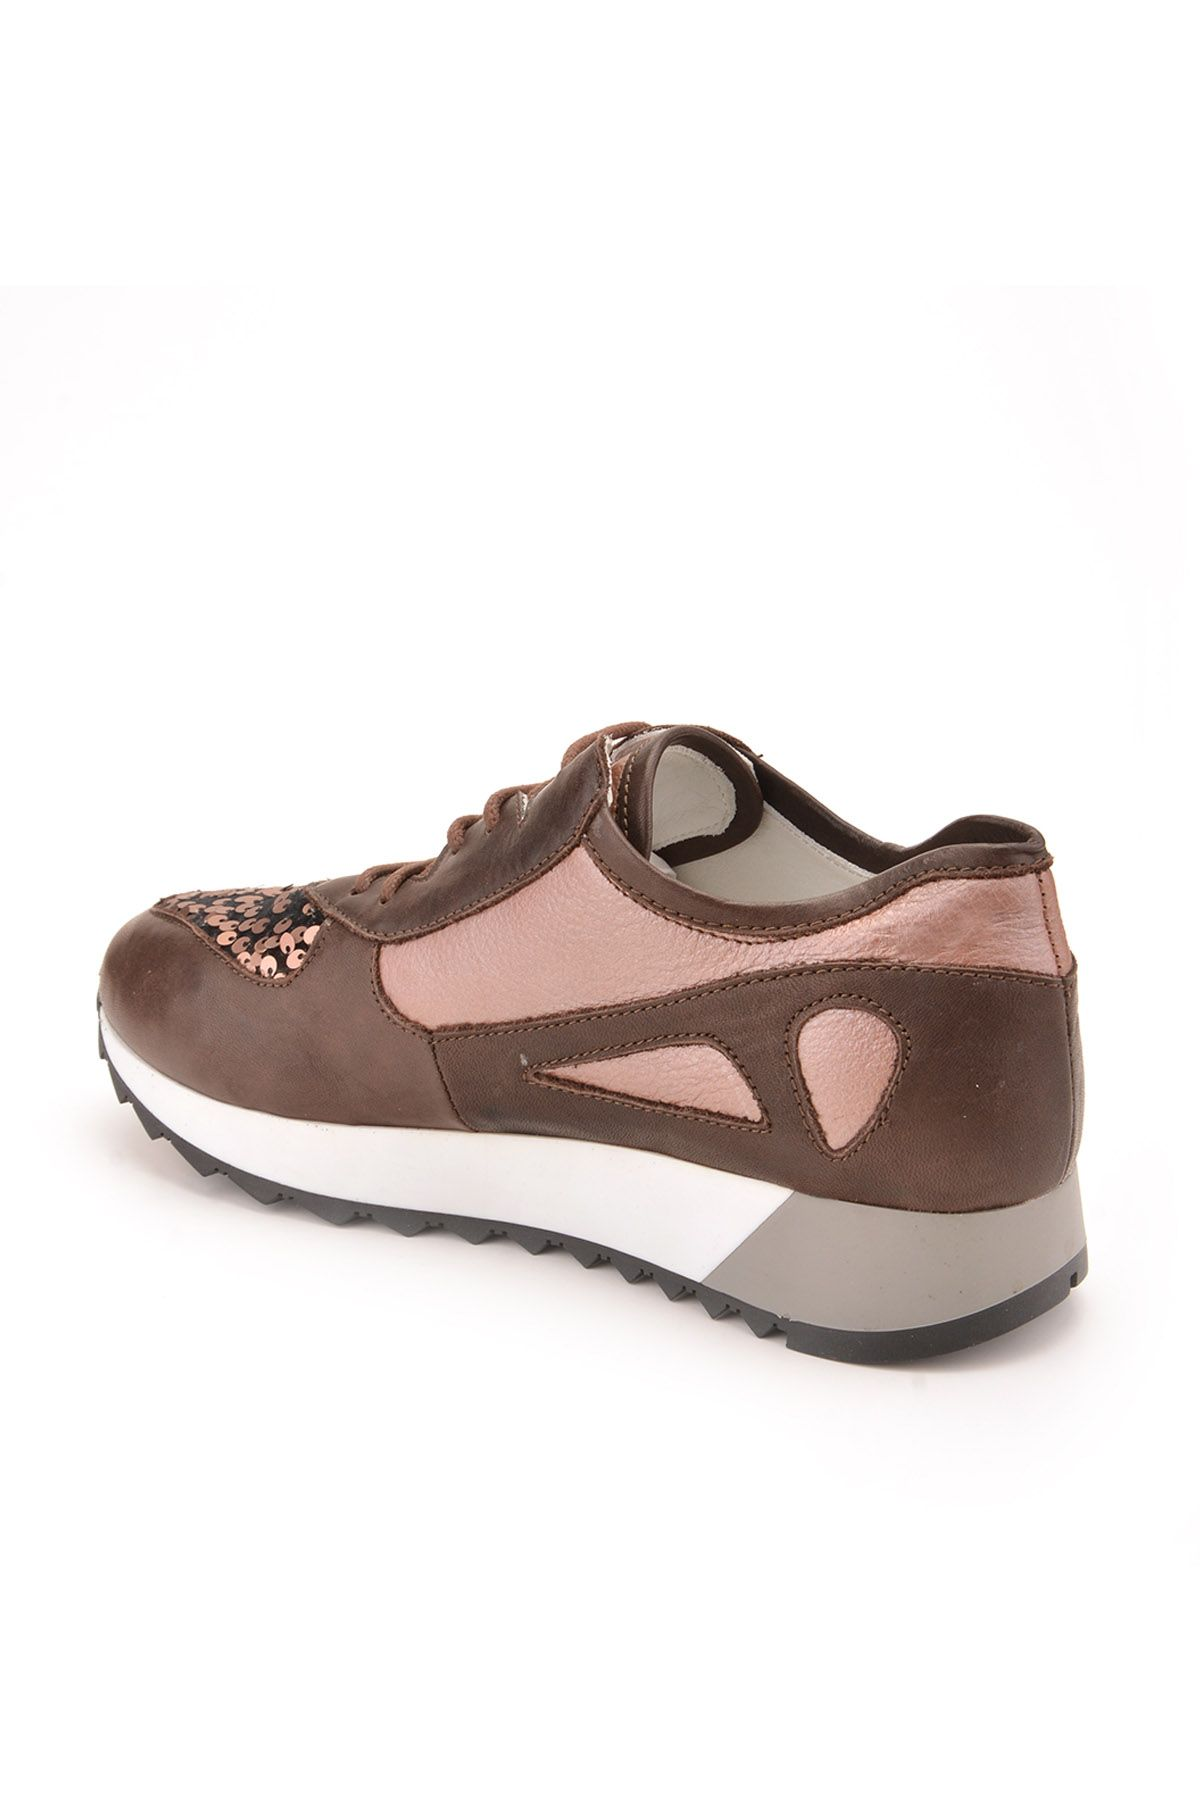 Pegia Anvers Sport Shoes From Genuine Leather REC-013 Brown